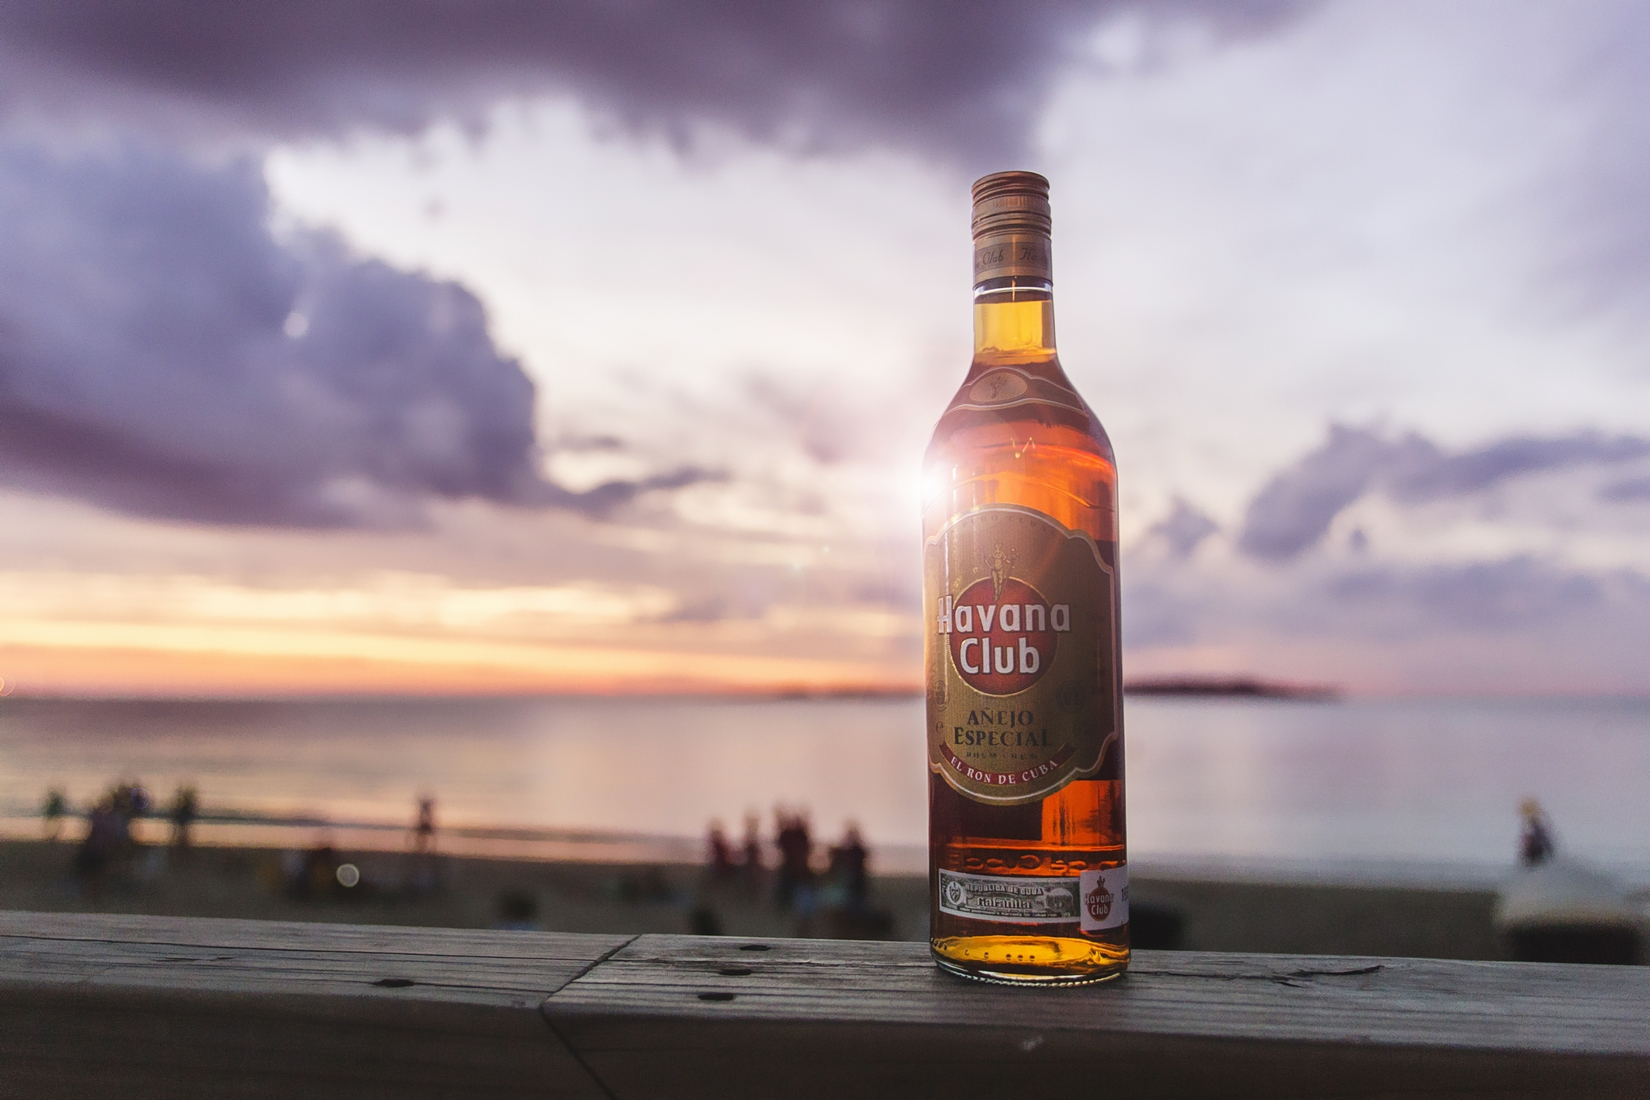 Sunset en OVO – Havana Club